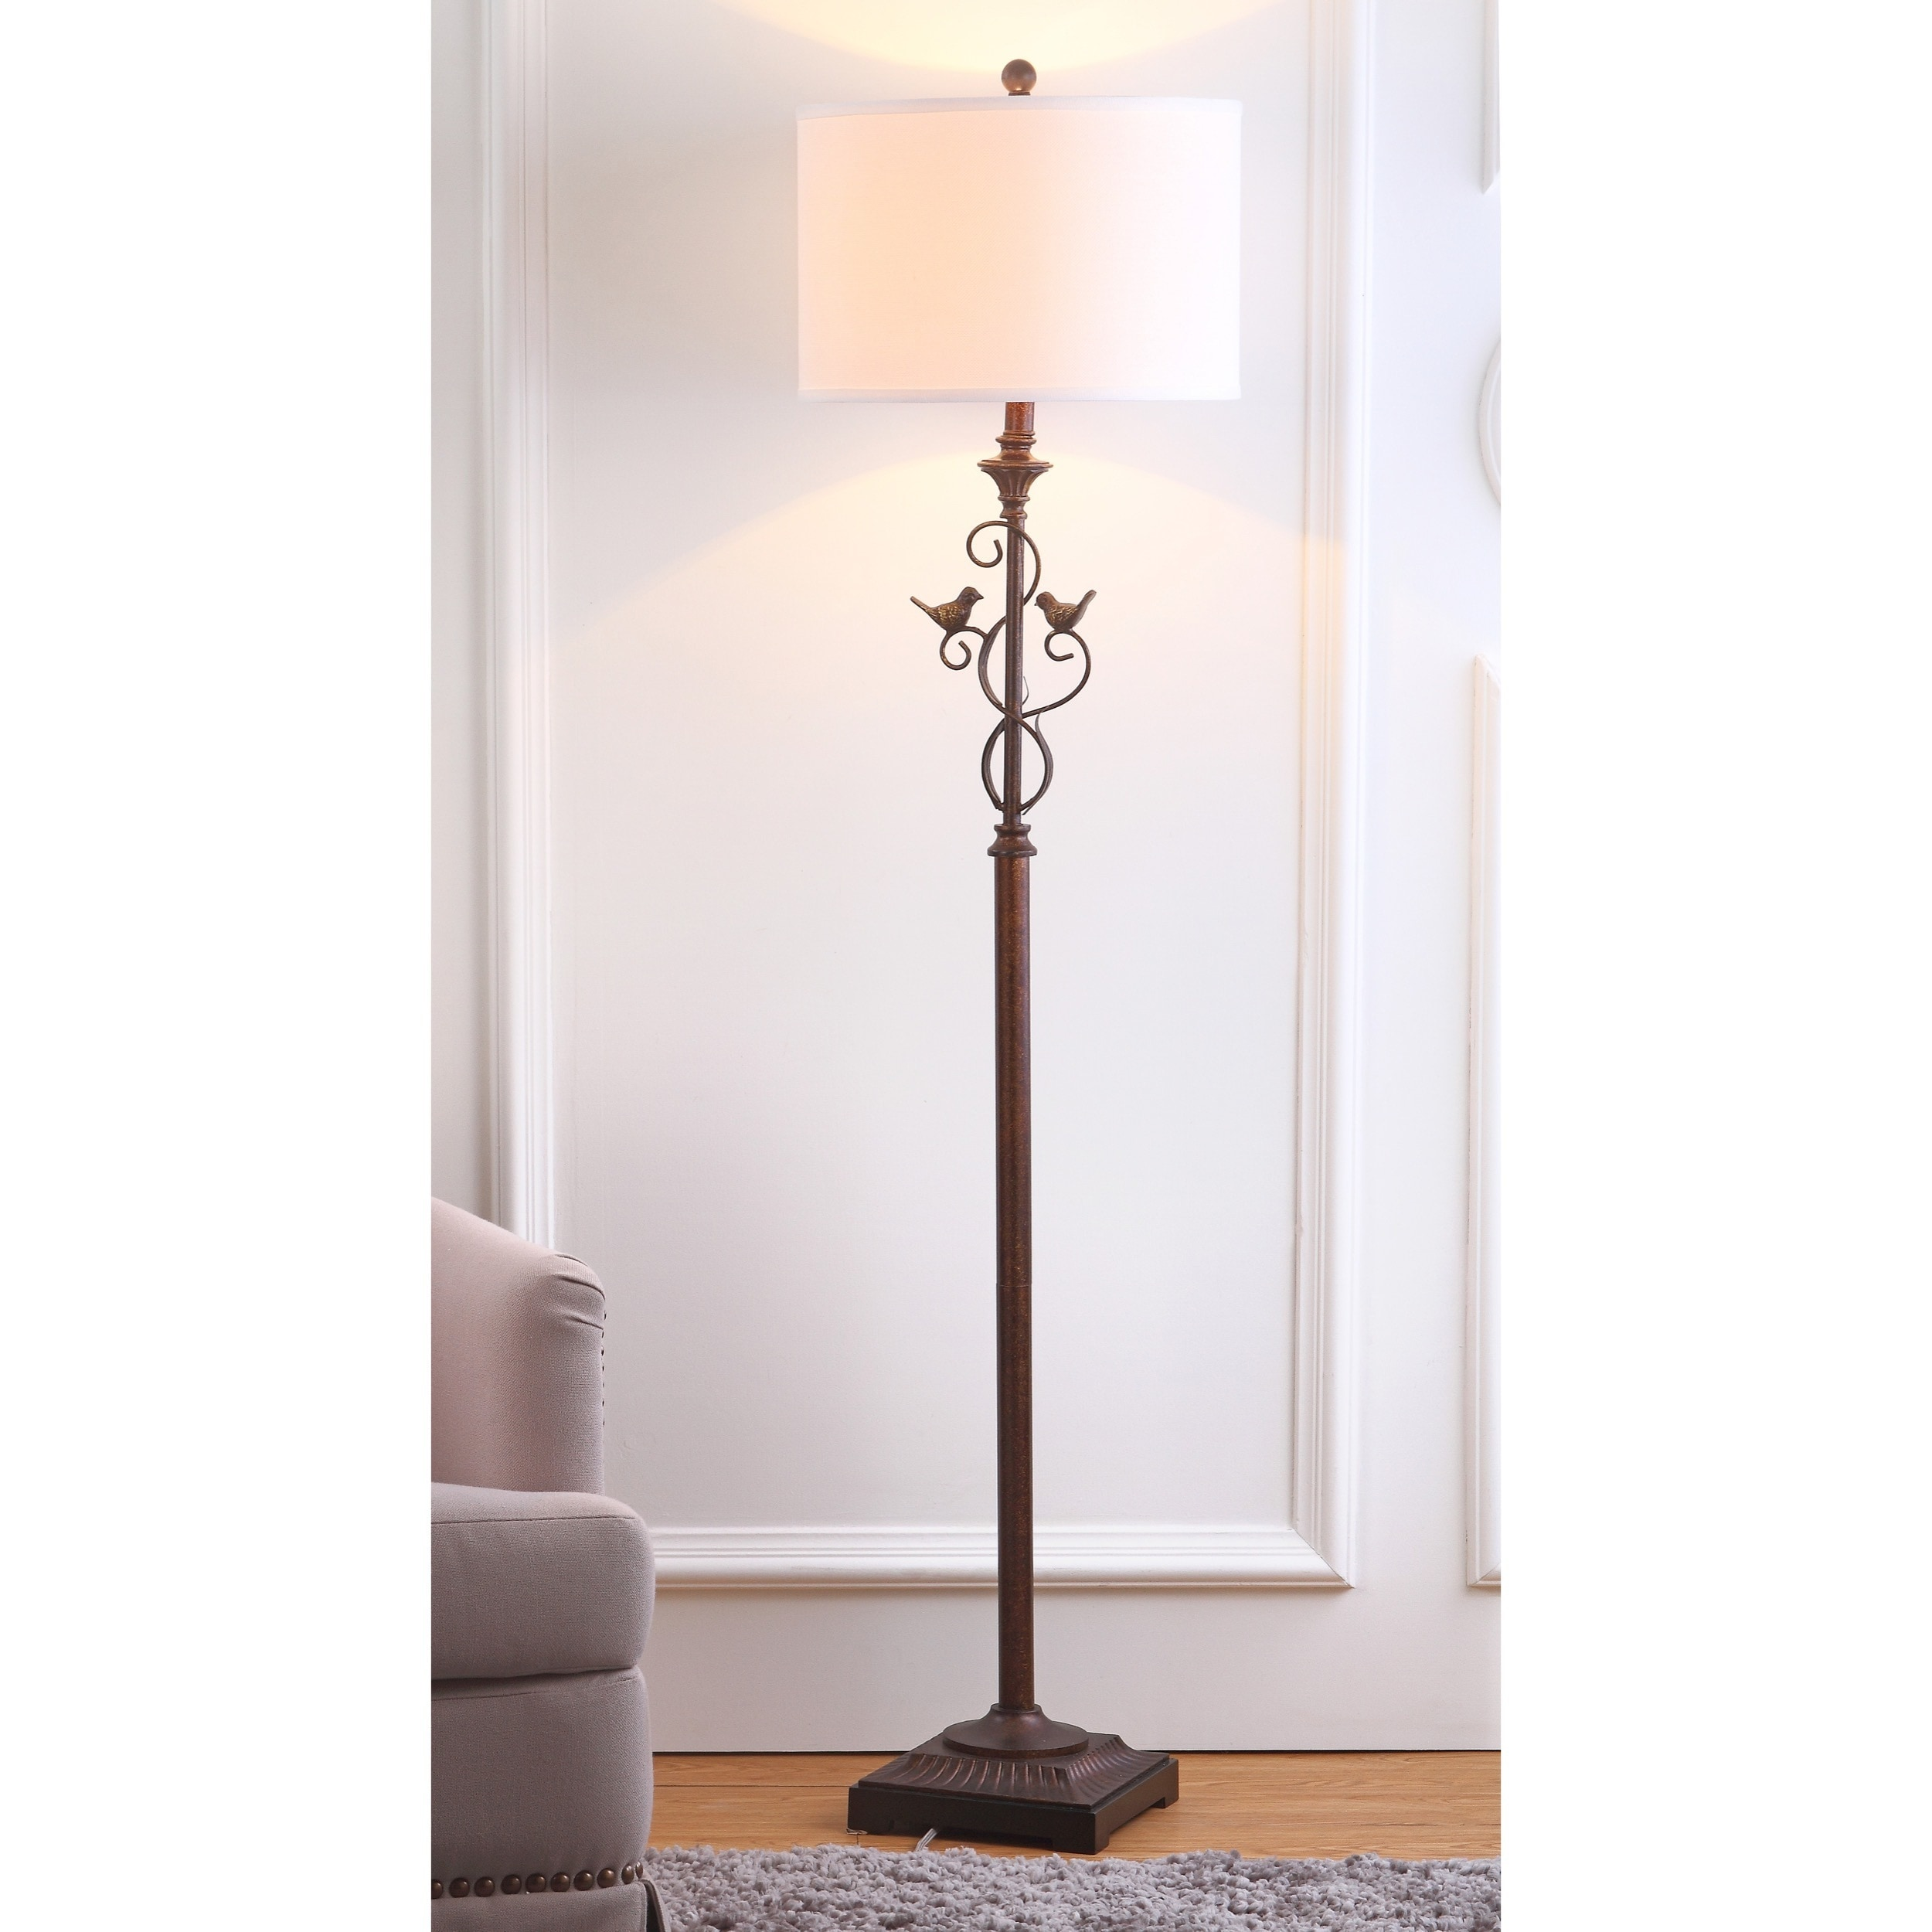 in lighting burlap floors iron works bay bronze shelves floor arcs wrought vintage base hampton franklin lamp arm swing oil rubbed exciting with antique shade tremont